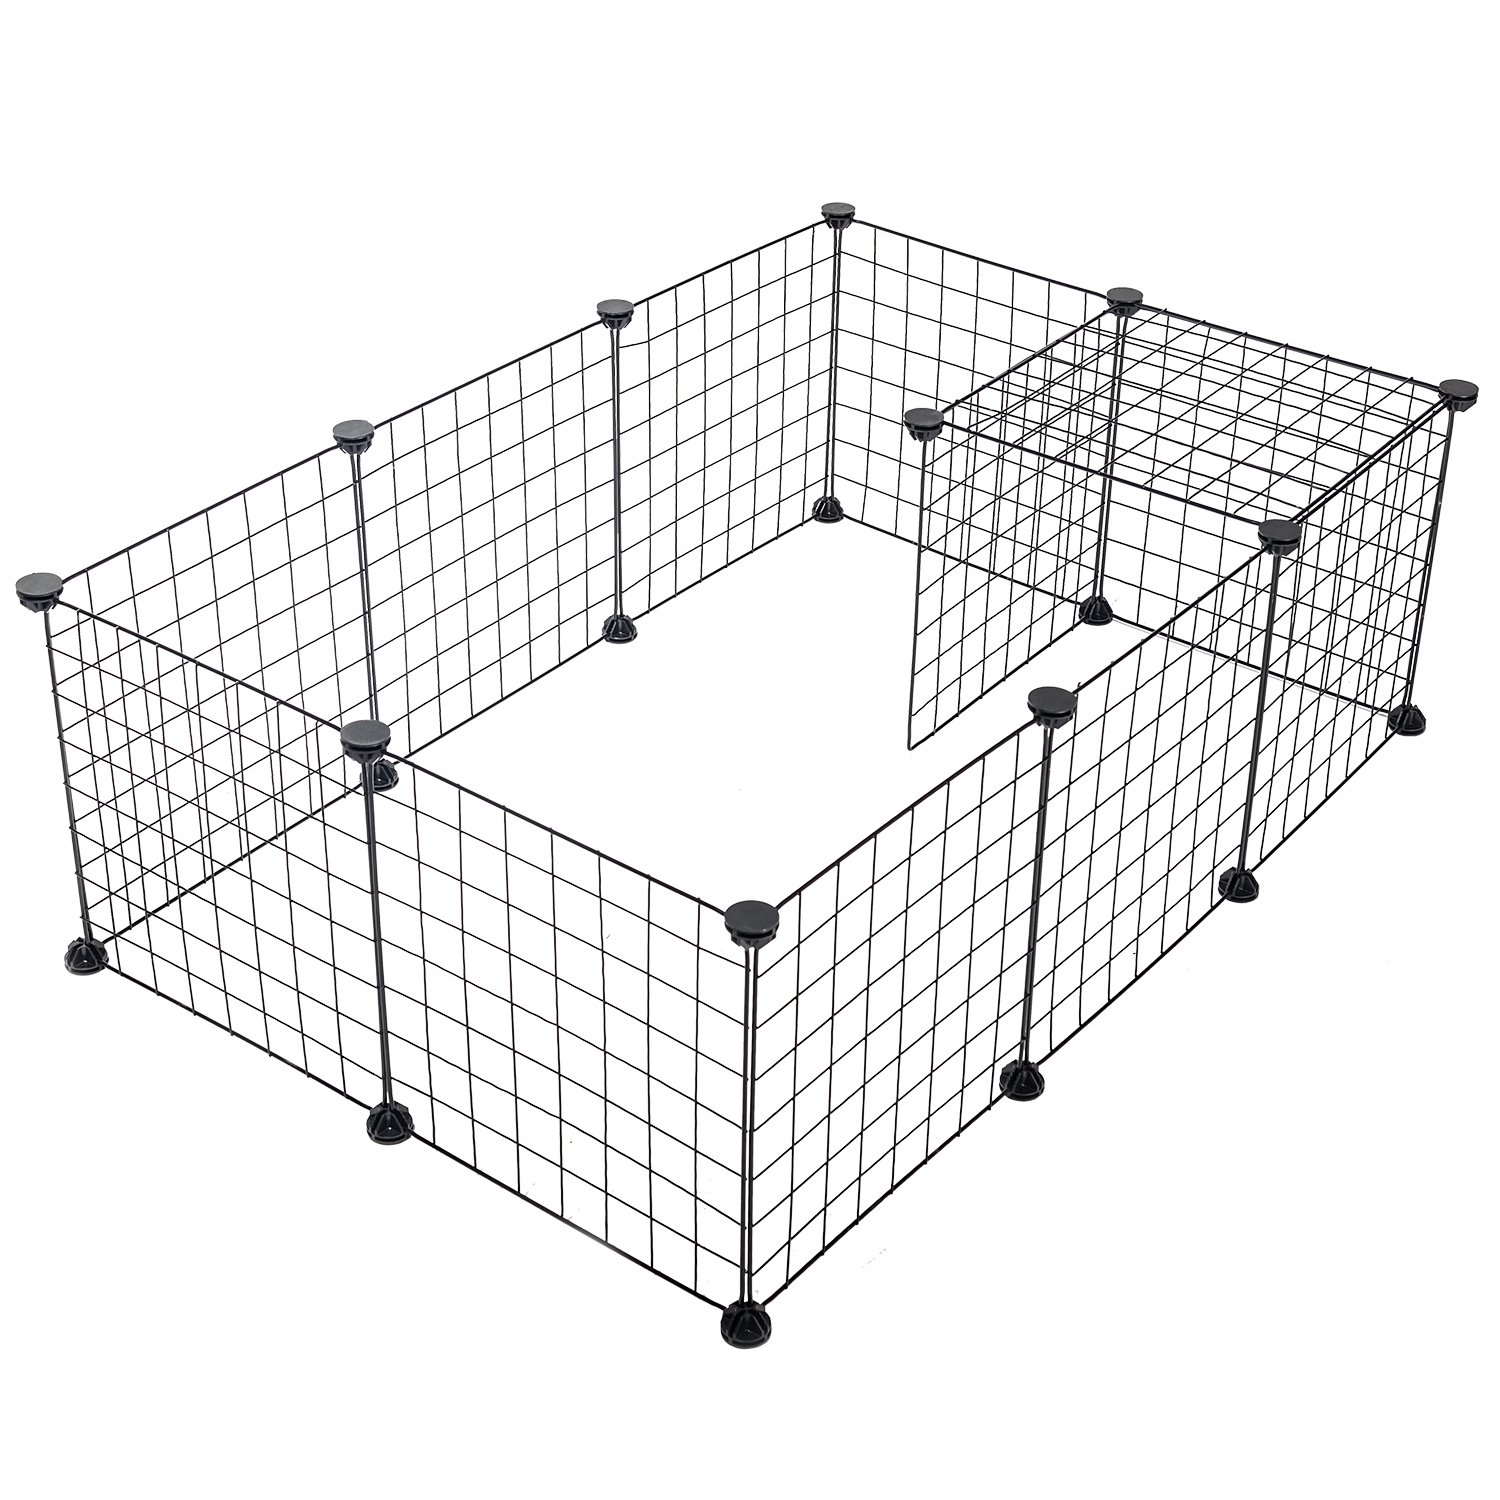 Pet Playpen Portable Animal Crate - SUKI&SAMI Wire Grid Cage, Indoor Exercise Fence for Guinea Pig, Rabbits, Small Animal, Black 12 Panels.